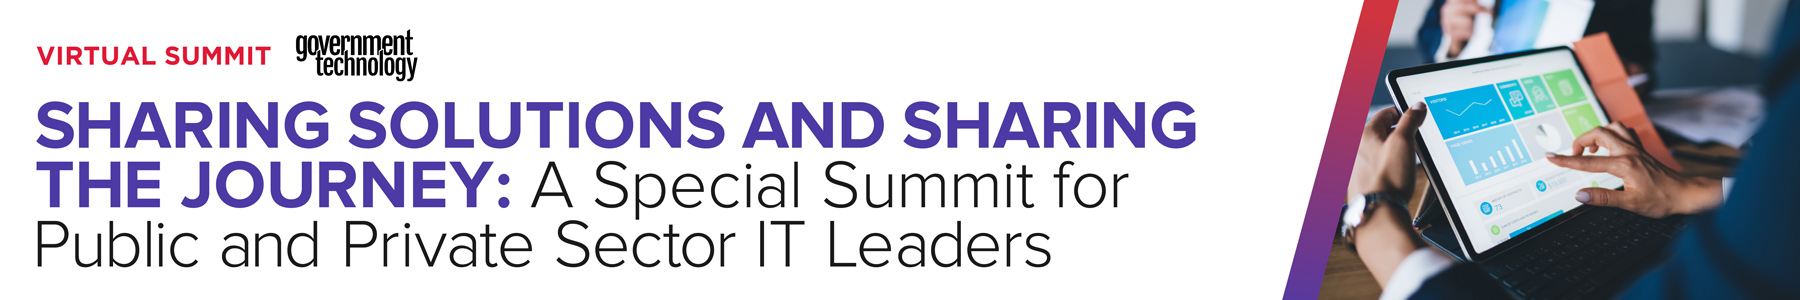 Sharing Solutions and Sharing the Journey: A Special Summit for Public and Private Sector IT Leaders